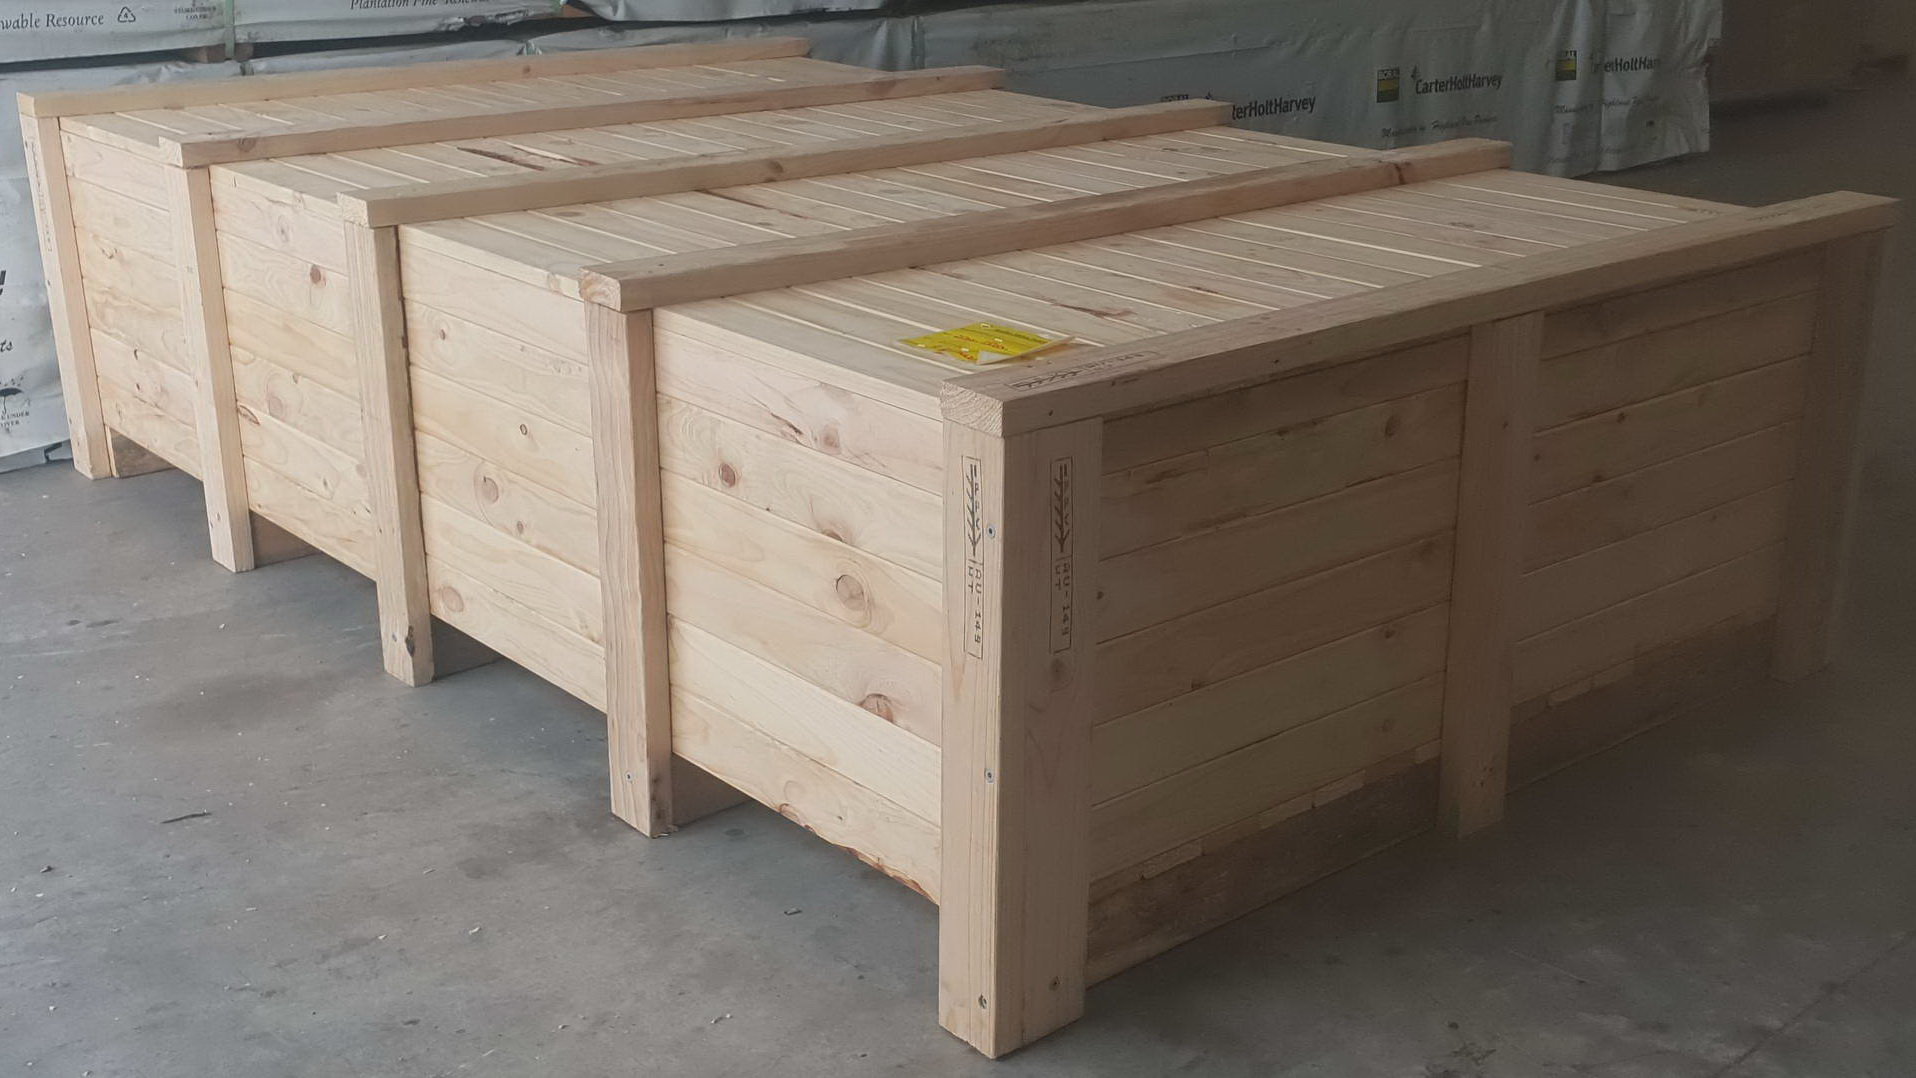 Export And Import Businesses Rely On Wooden Crates Australia For Some Reasons